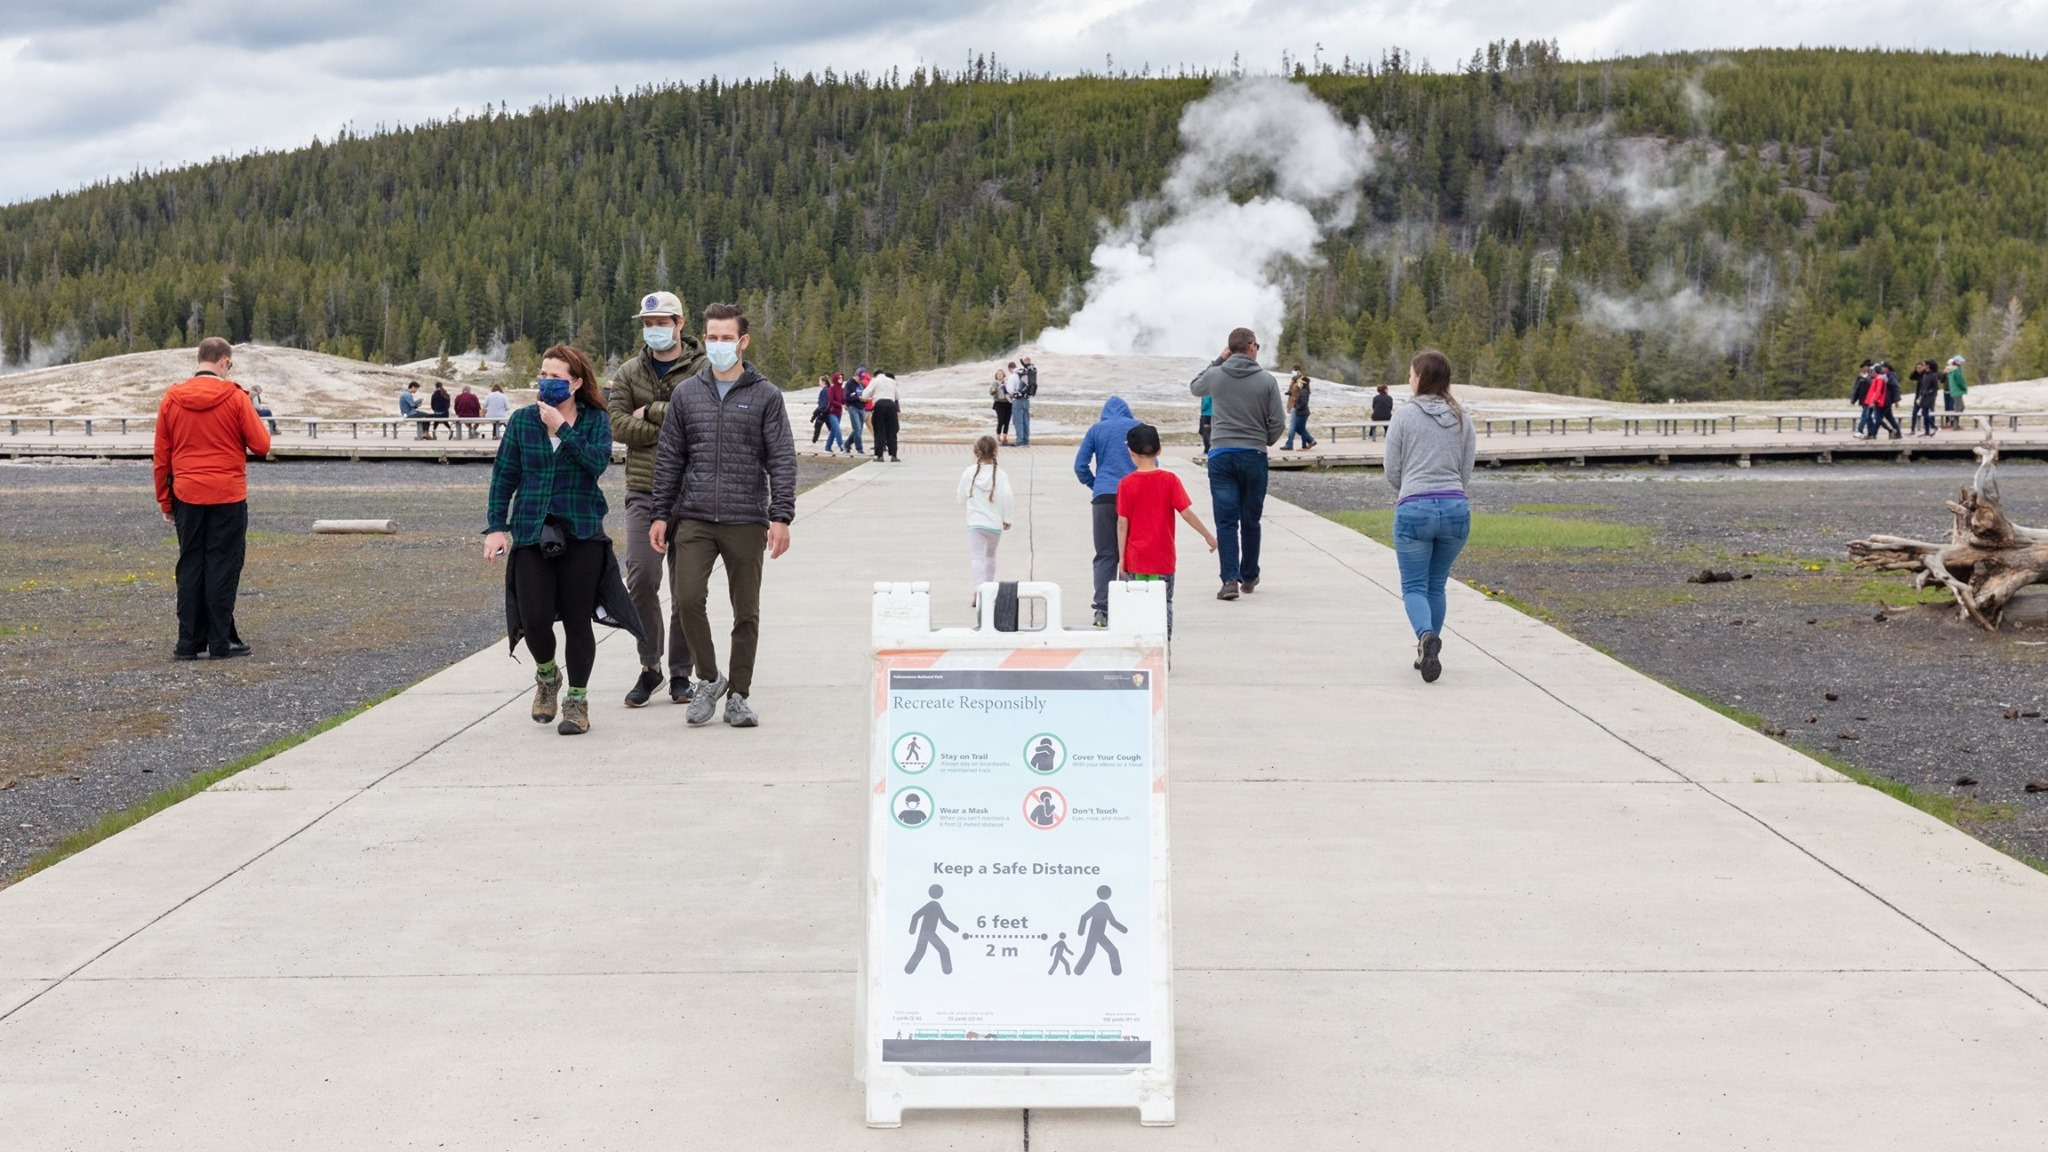 "Visitors wearing face masks use a walkway that leads to a steaming geyser in the background. The groups of visitors are physically distant. In the foreground is a sign propped on the ground that reads ""Recreate Responsibly. Stay on the trail."""